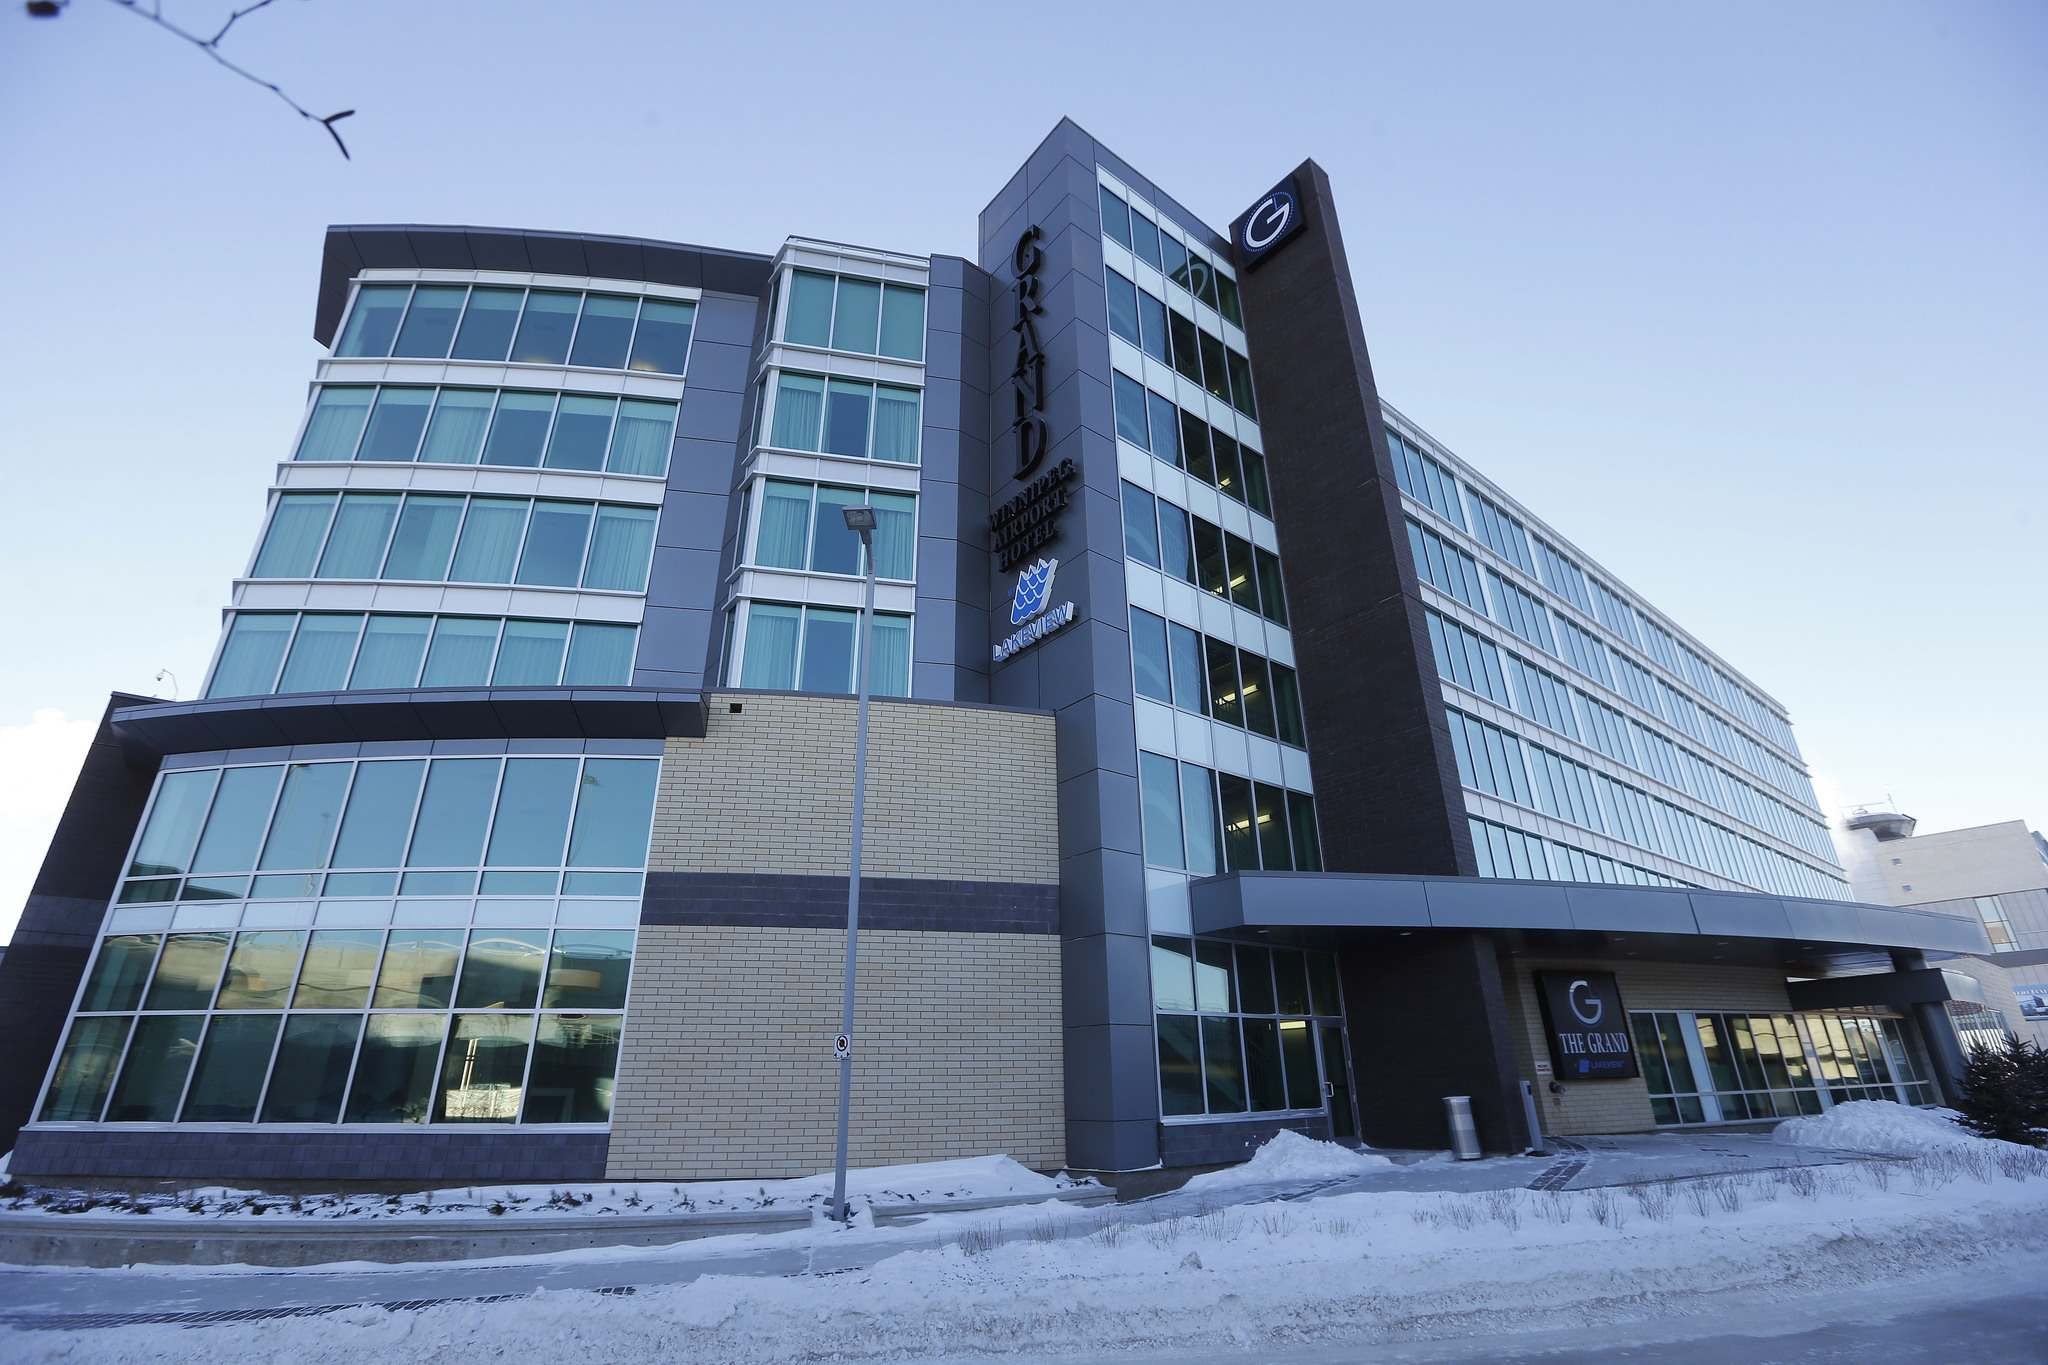 The Grand Winnipeg Airport Hotel opened in 2014 directly across from the aiport terminal. (Ken Gigliotti / Winnipeg Free Press Files)</p>